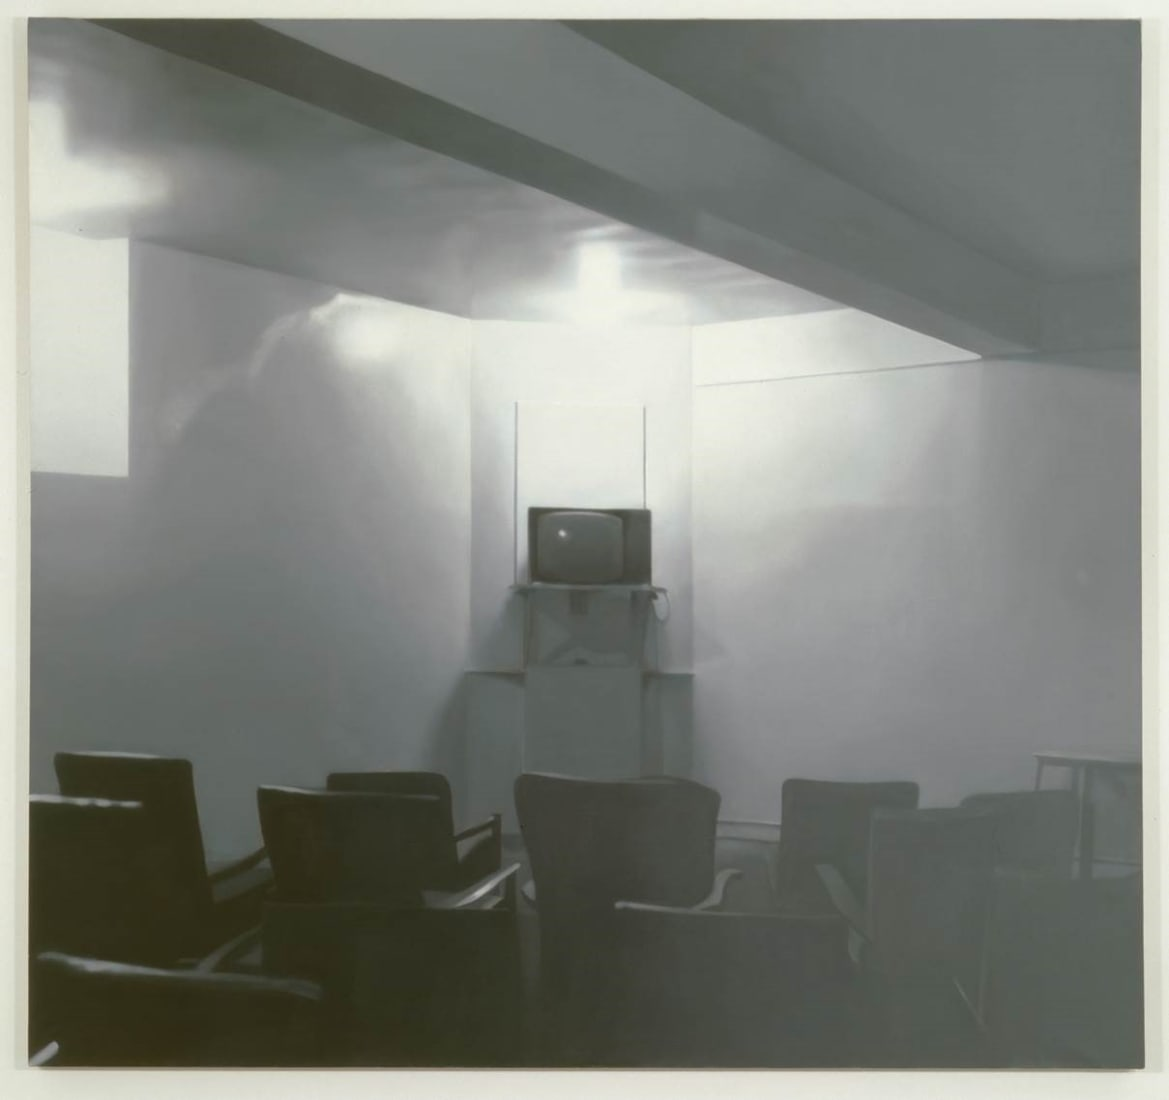 <p>Paul Winstanley; <em>TV Room 1</em>, 1991.<br />Oil on linen, 160 x 170 cm. Arts Council Collection.</p>